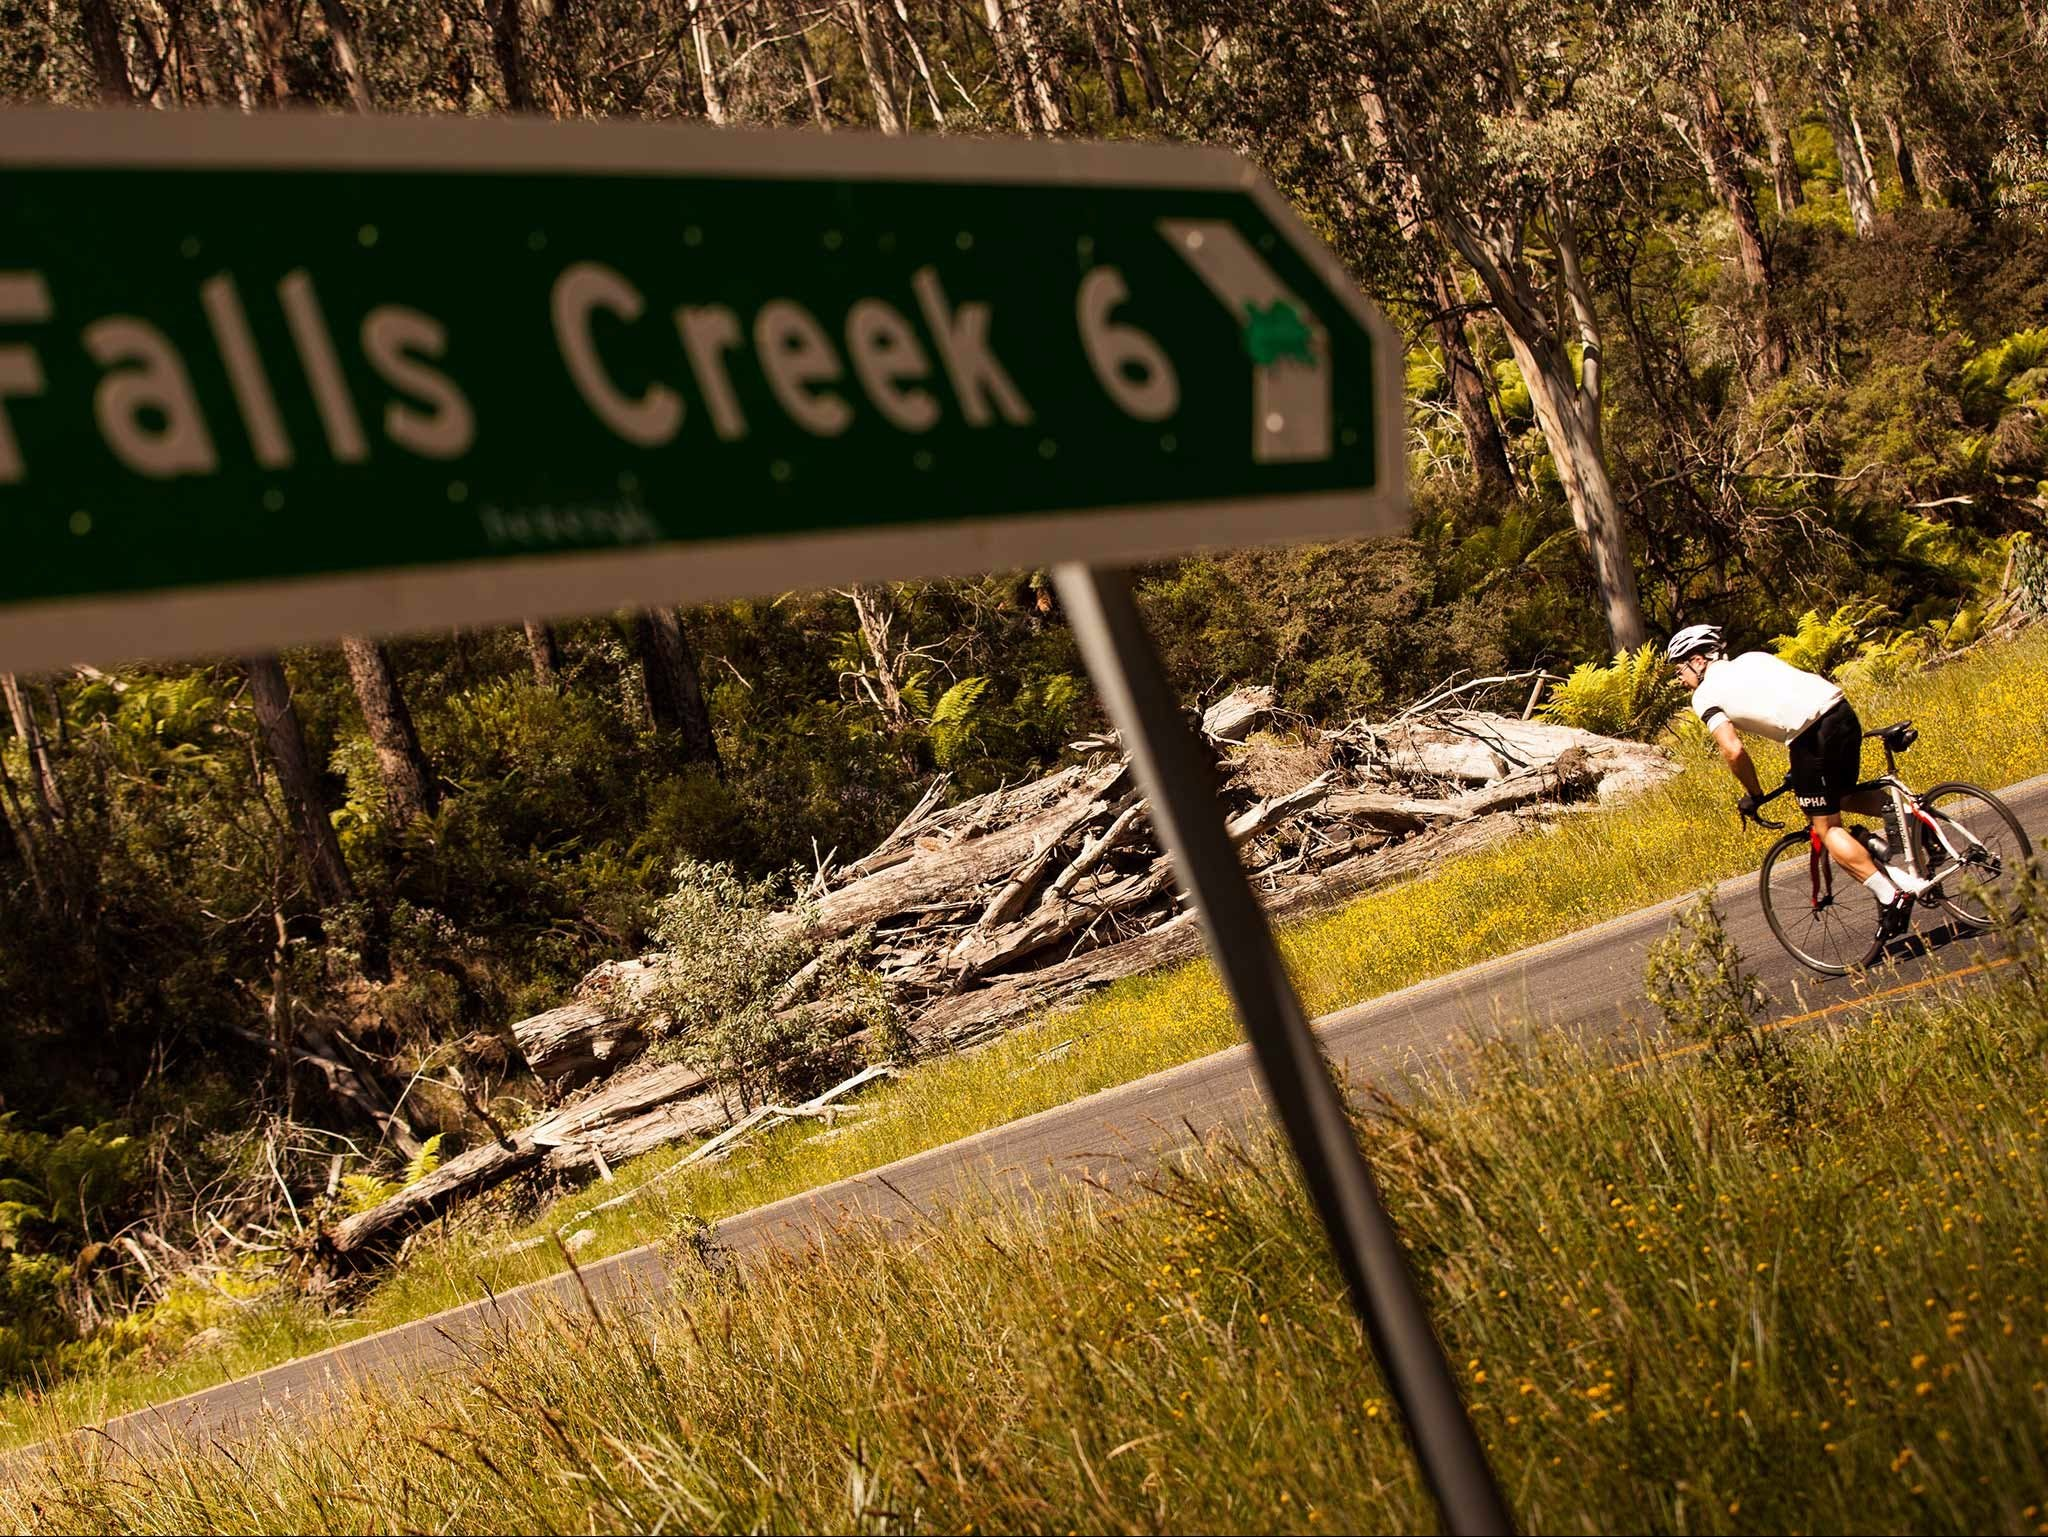 7 Peaks Ride - Falls Creek - Victoria Tourism